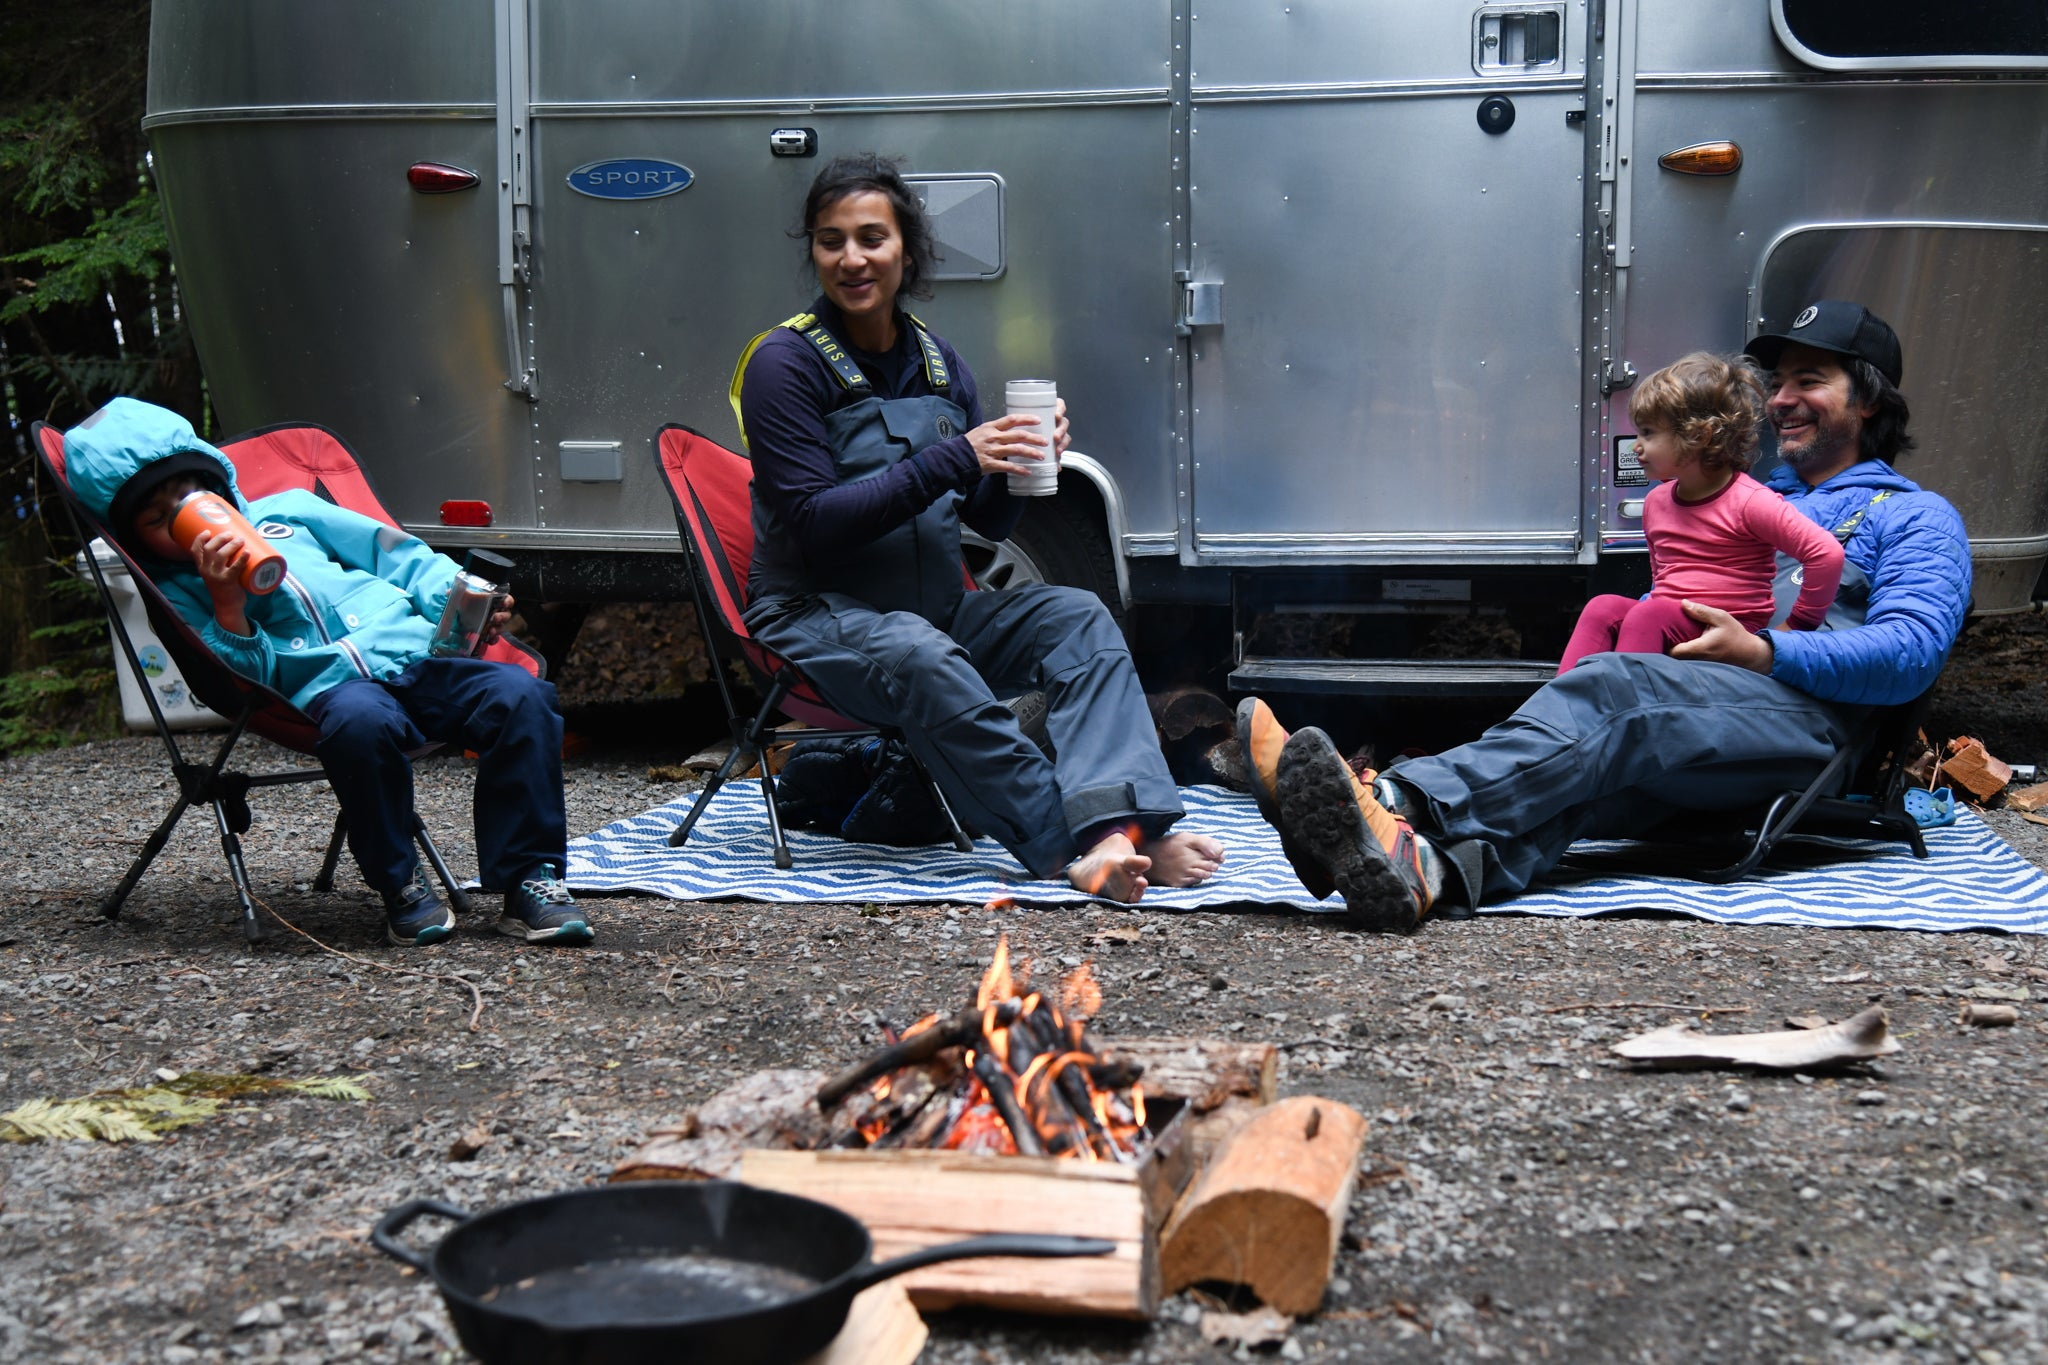 Family of four lounging by a campfire in front of a metal airstream trailer.